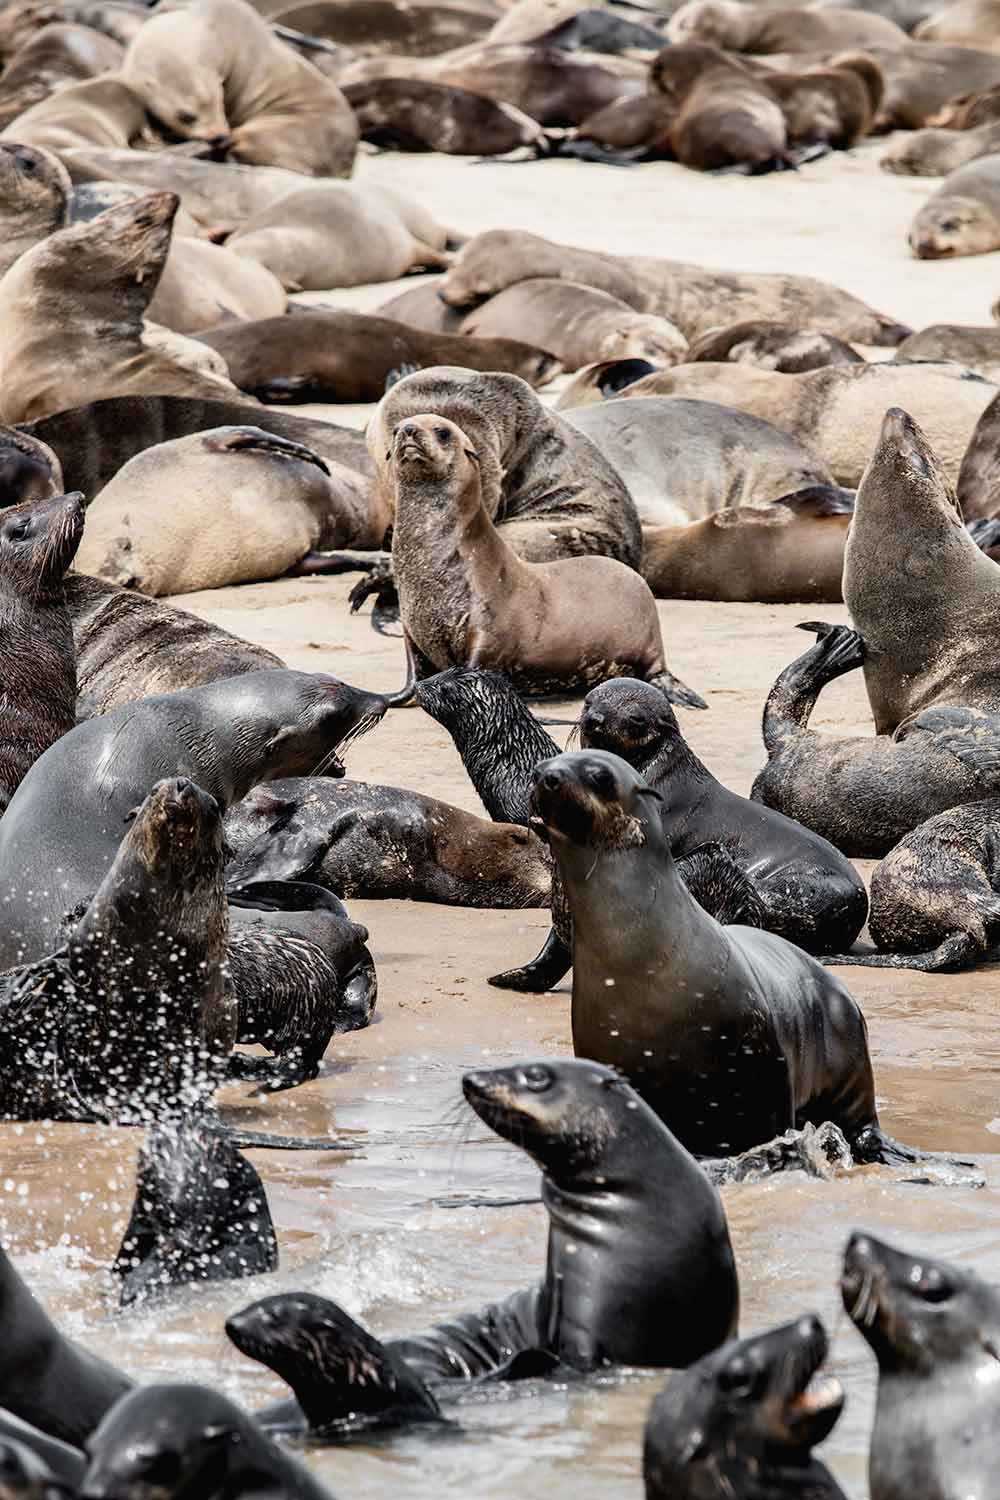 Cape Fur seals enjoying the sunshine between Walvis Bay and Swakopmund